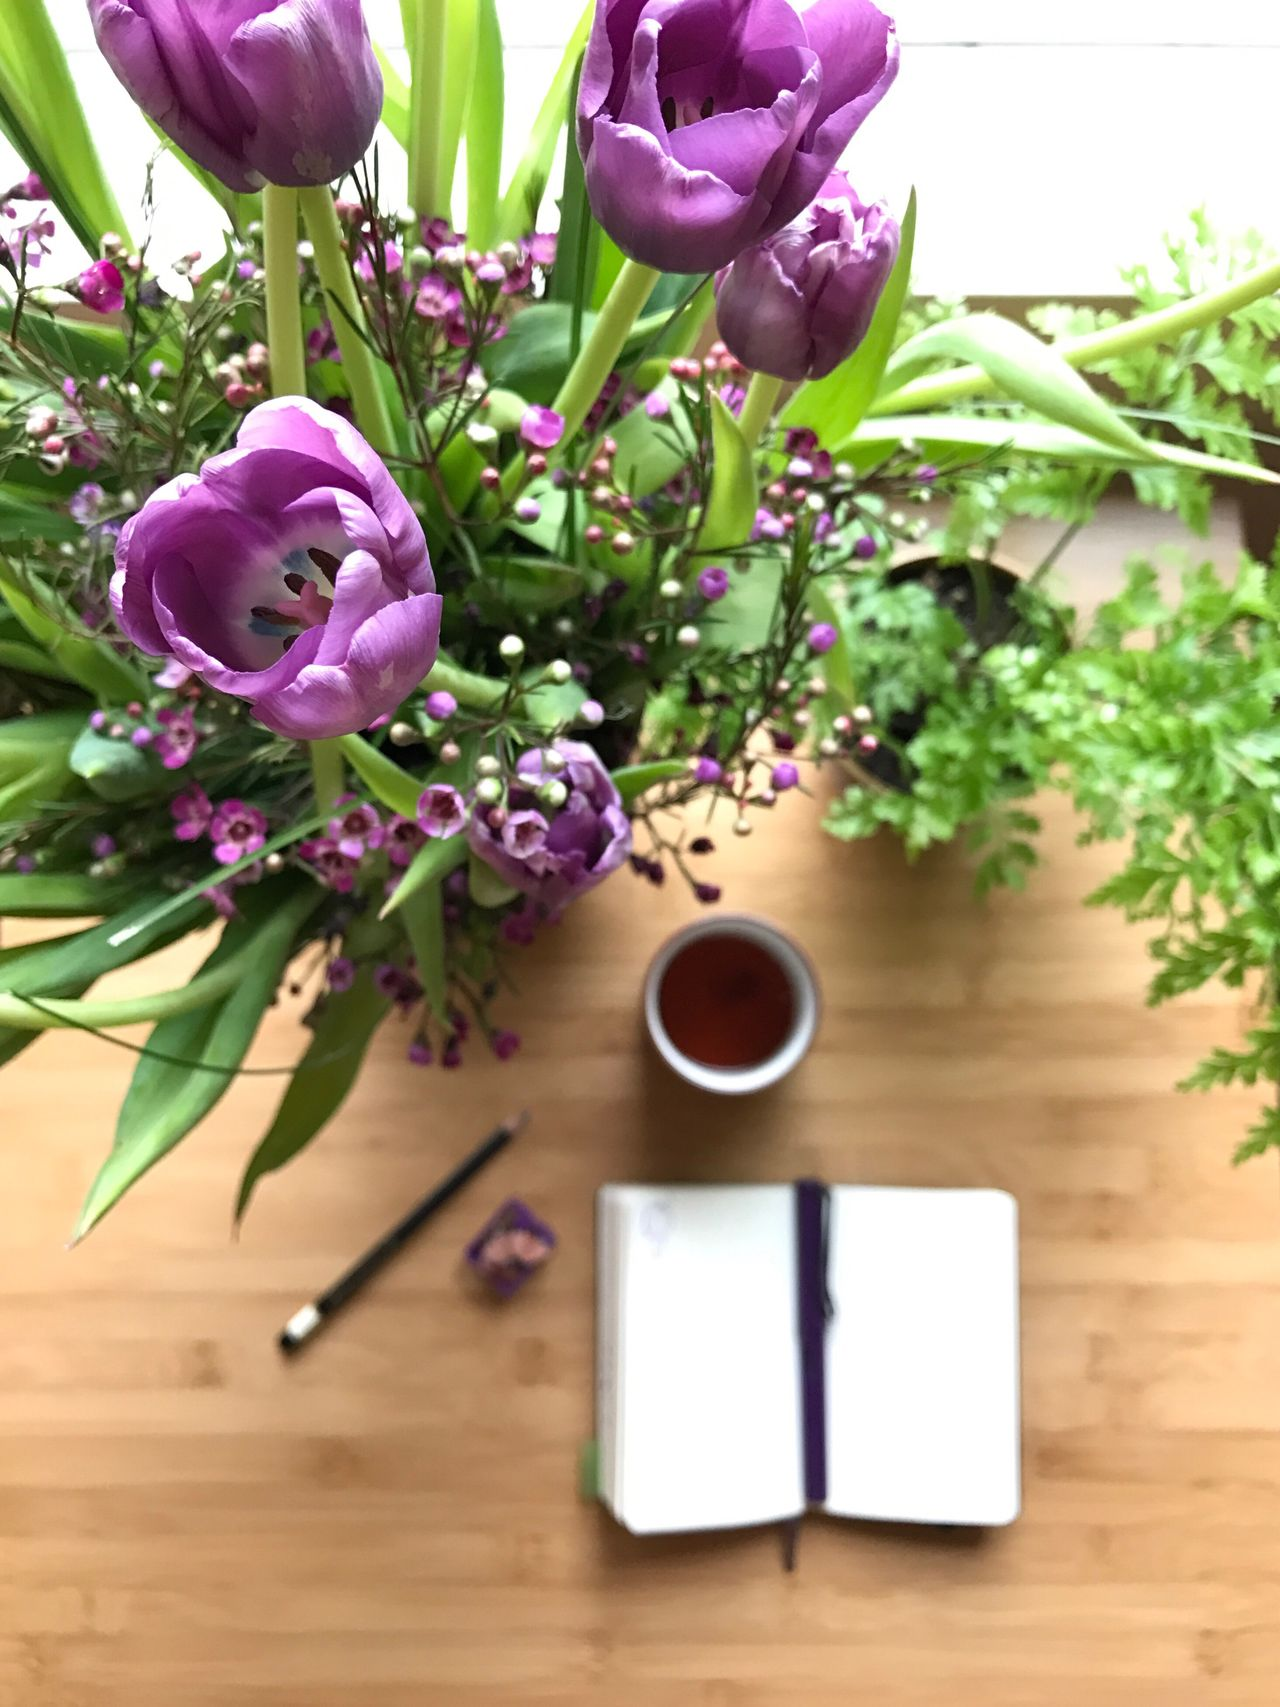 Flower No People Freshness Leaf Plant Nature Tulip Close-up Indoors  Fragility Day Beauty In Nature Flower Head Journal Writing Notebook On The Table